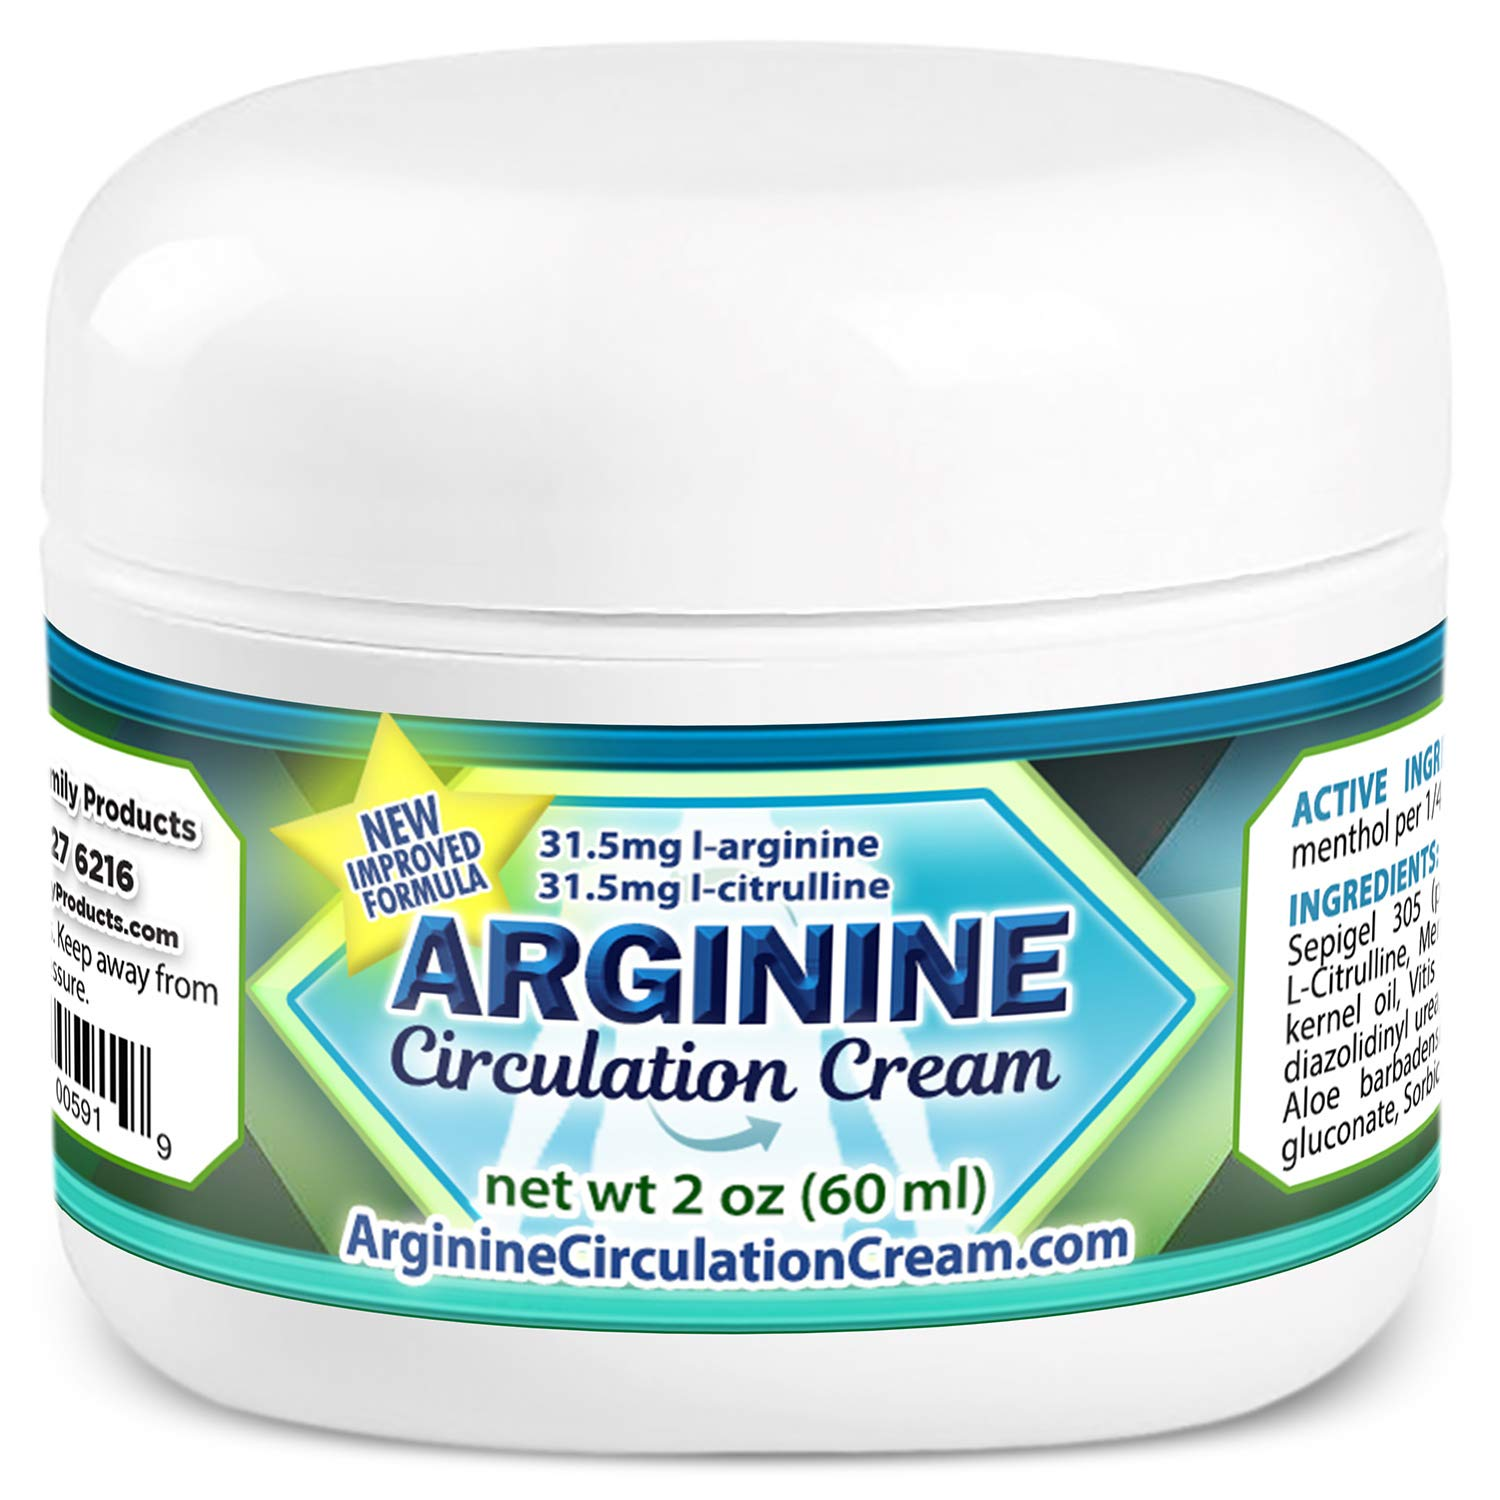 Arginine Circulation Cream - Menthol, L Arginine & L Citrulline Circulation Lotion - Improve Blood Circulation to Cold Hands and Feet - Supports Better Blood Flow to Swollen Feet & Legs (2 oz)